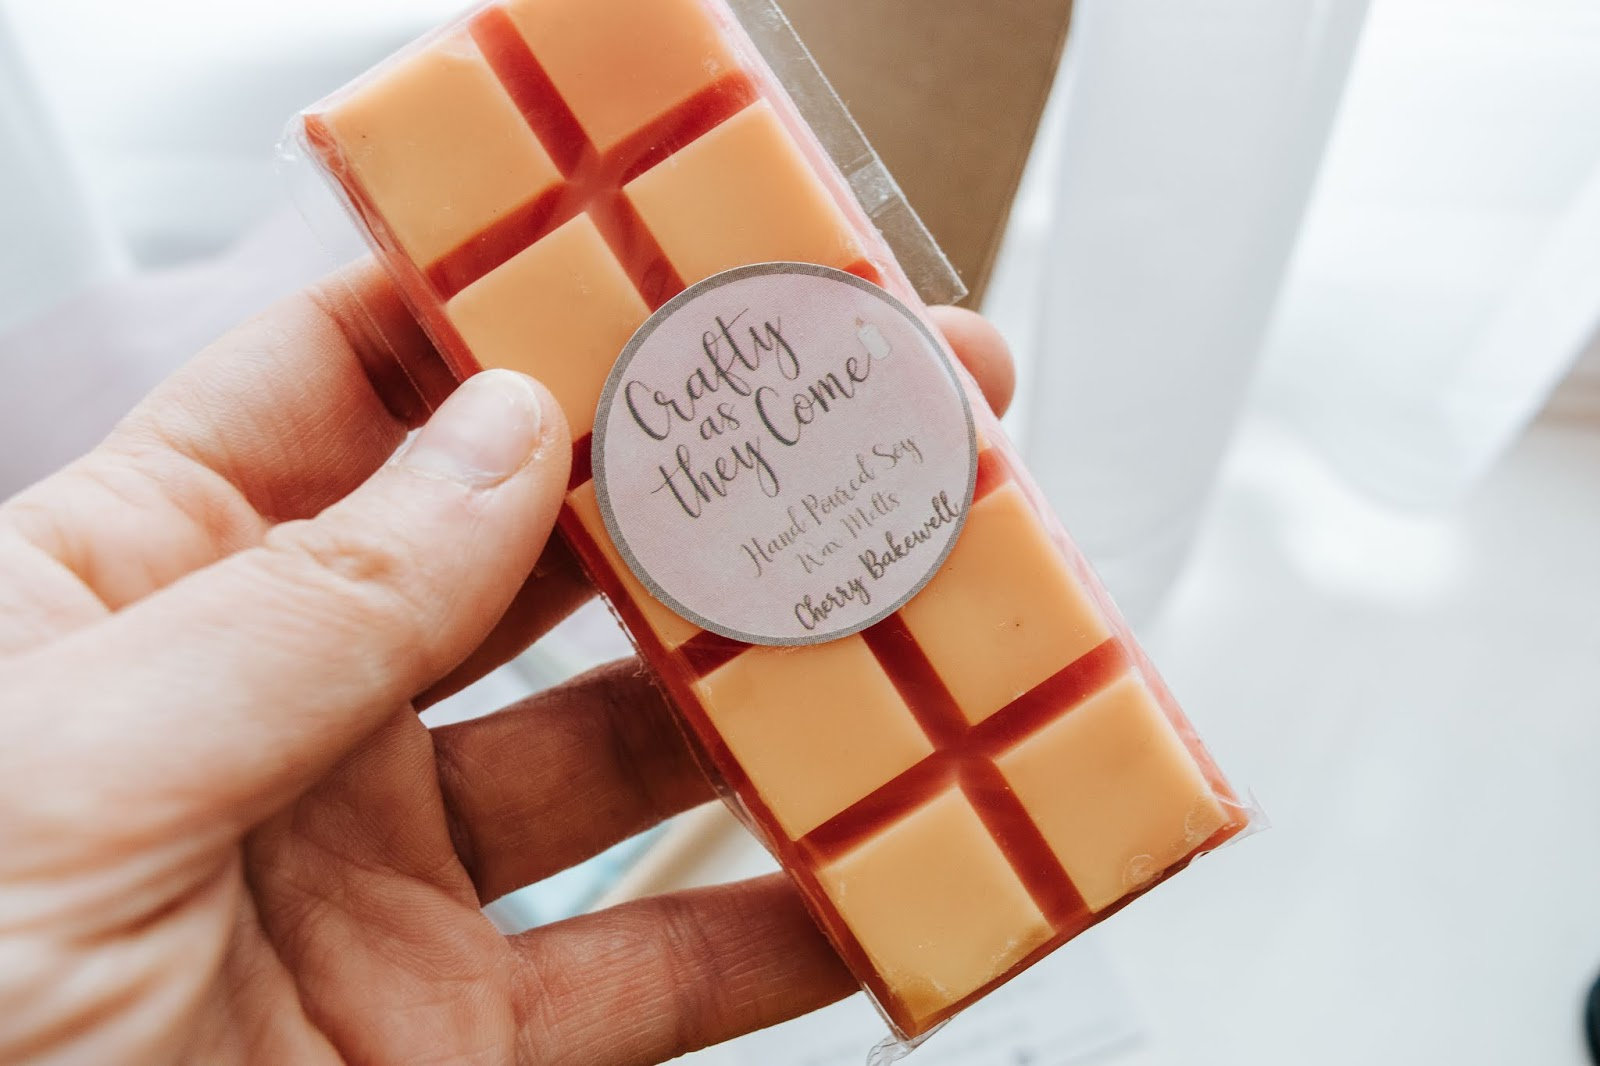 A red and orange Cherry Bakewell scented wax melt bar.